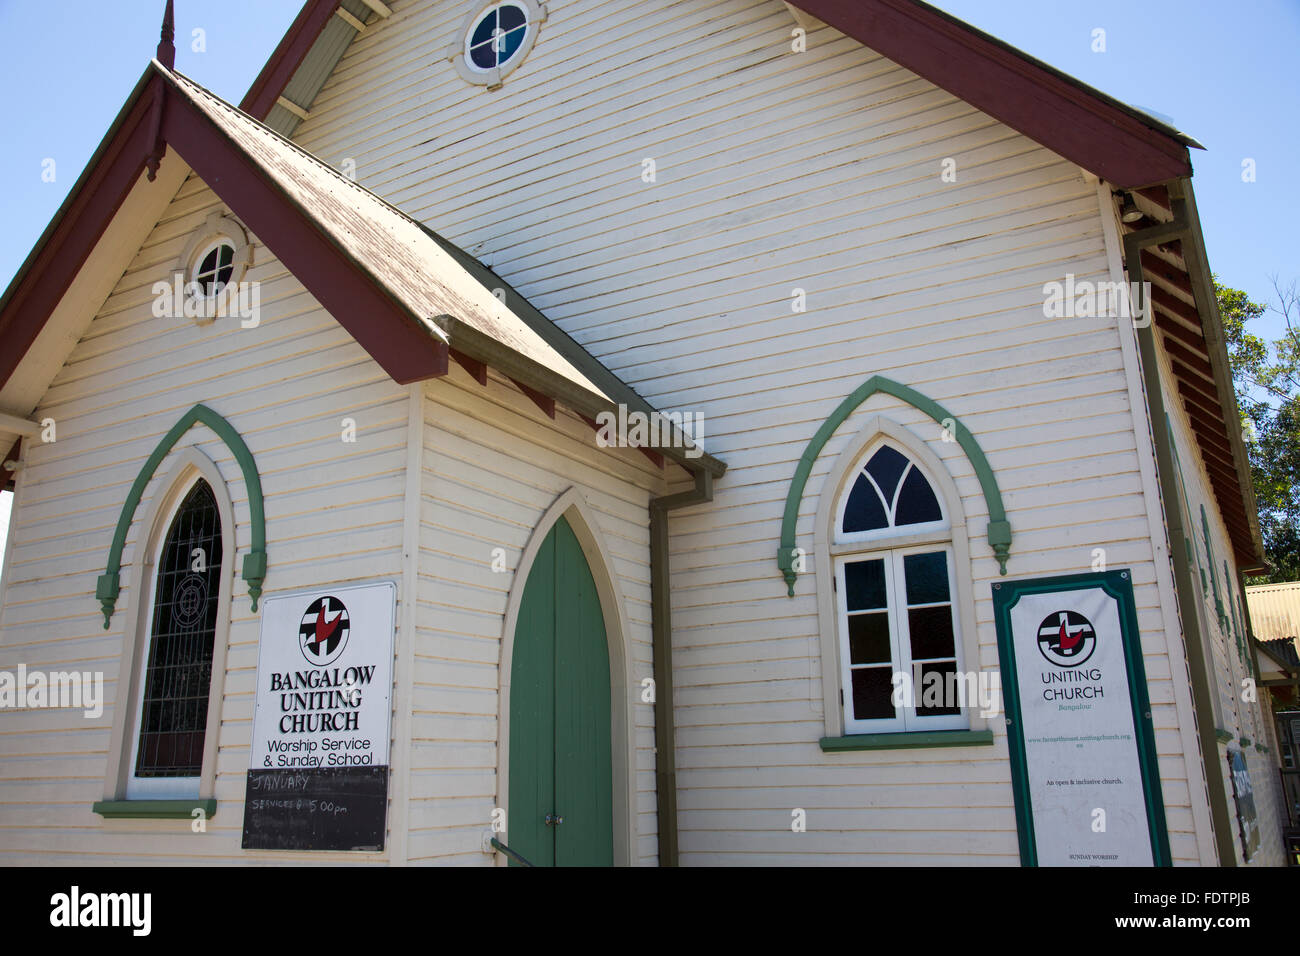 Uniting church in the village of Bangalow in northern new south wales,australia - Stock Image